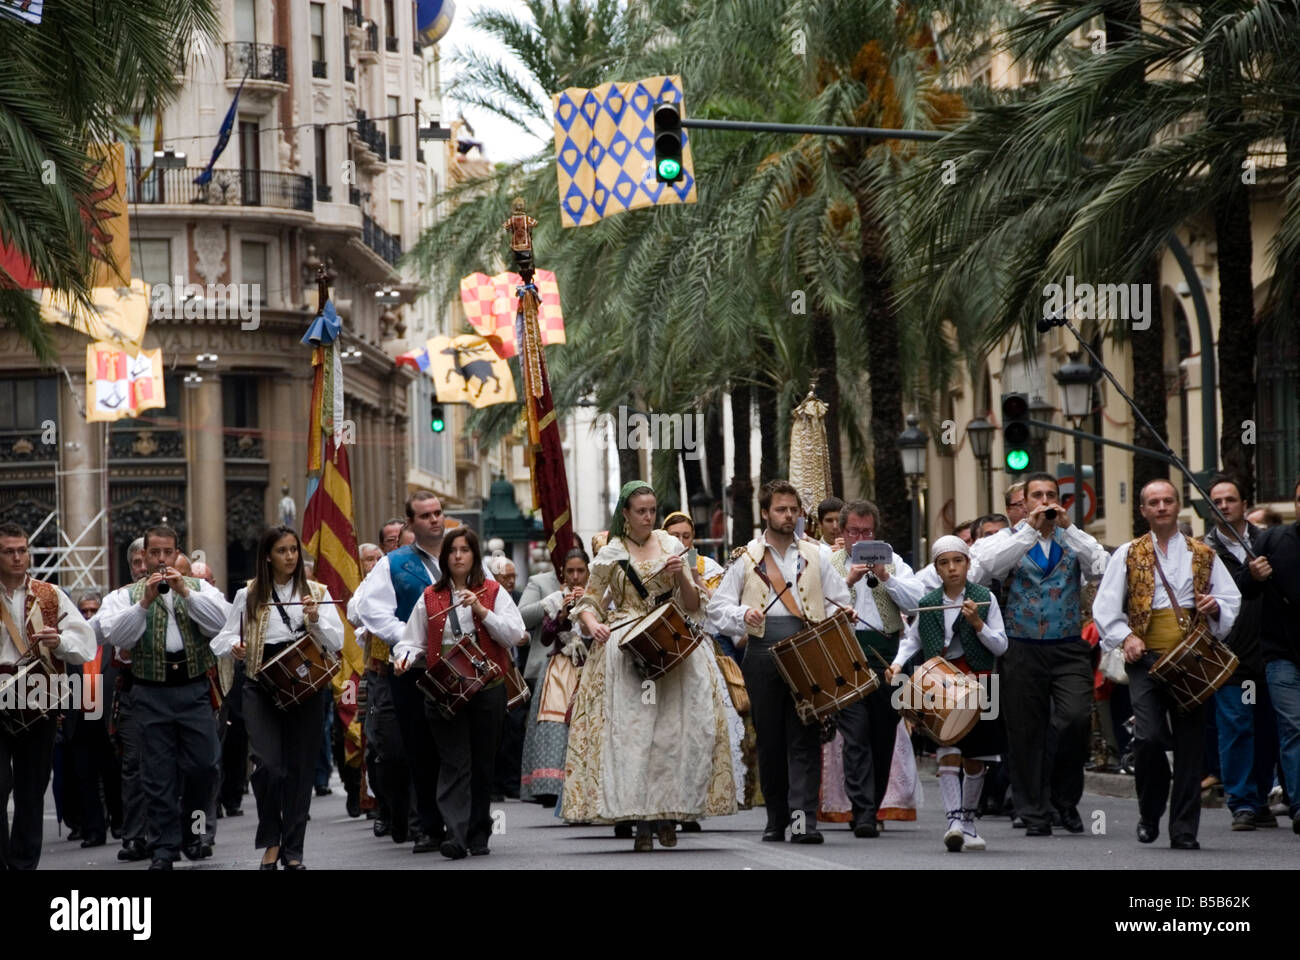 Nou D Octubre 9th October in commemoration of the entrance of King James I into the city of Valencia Spain - Stock Image